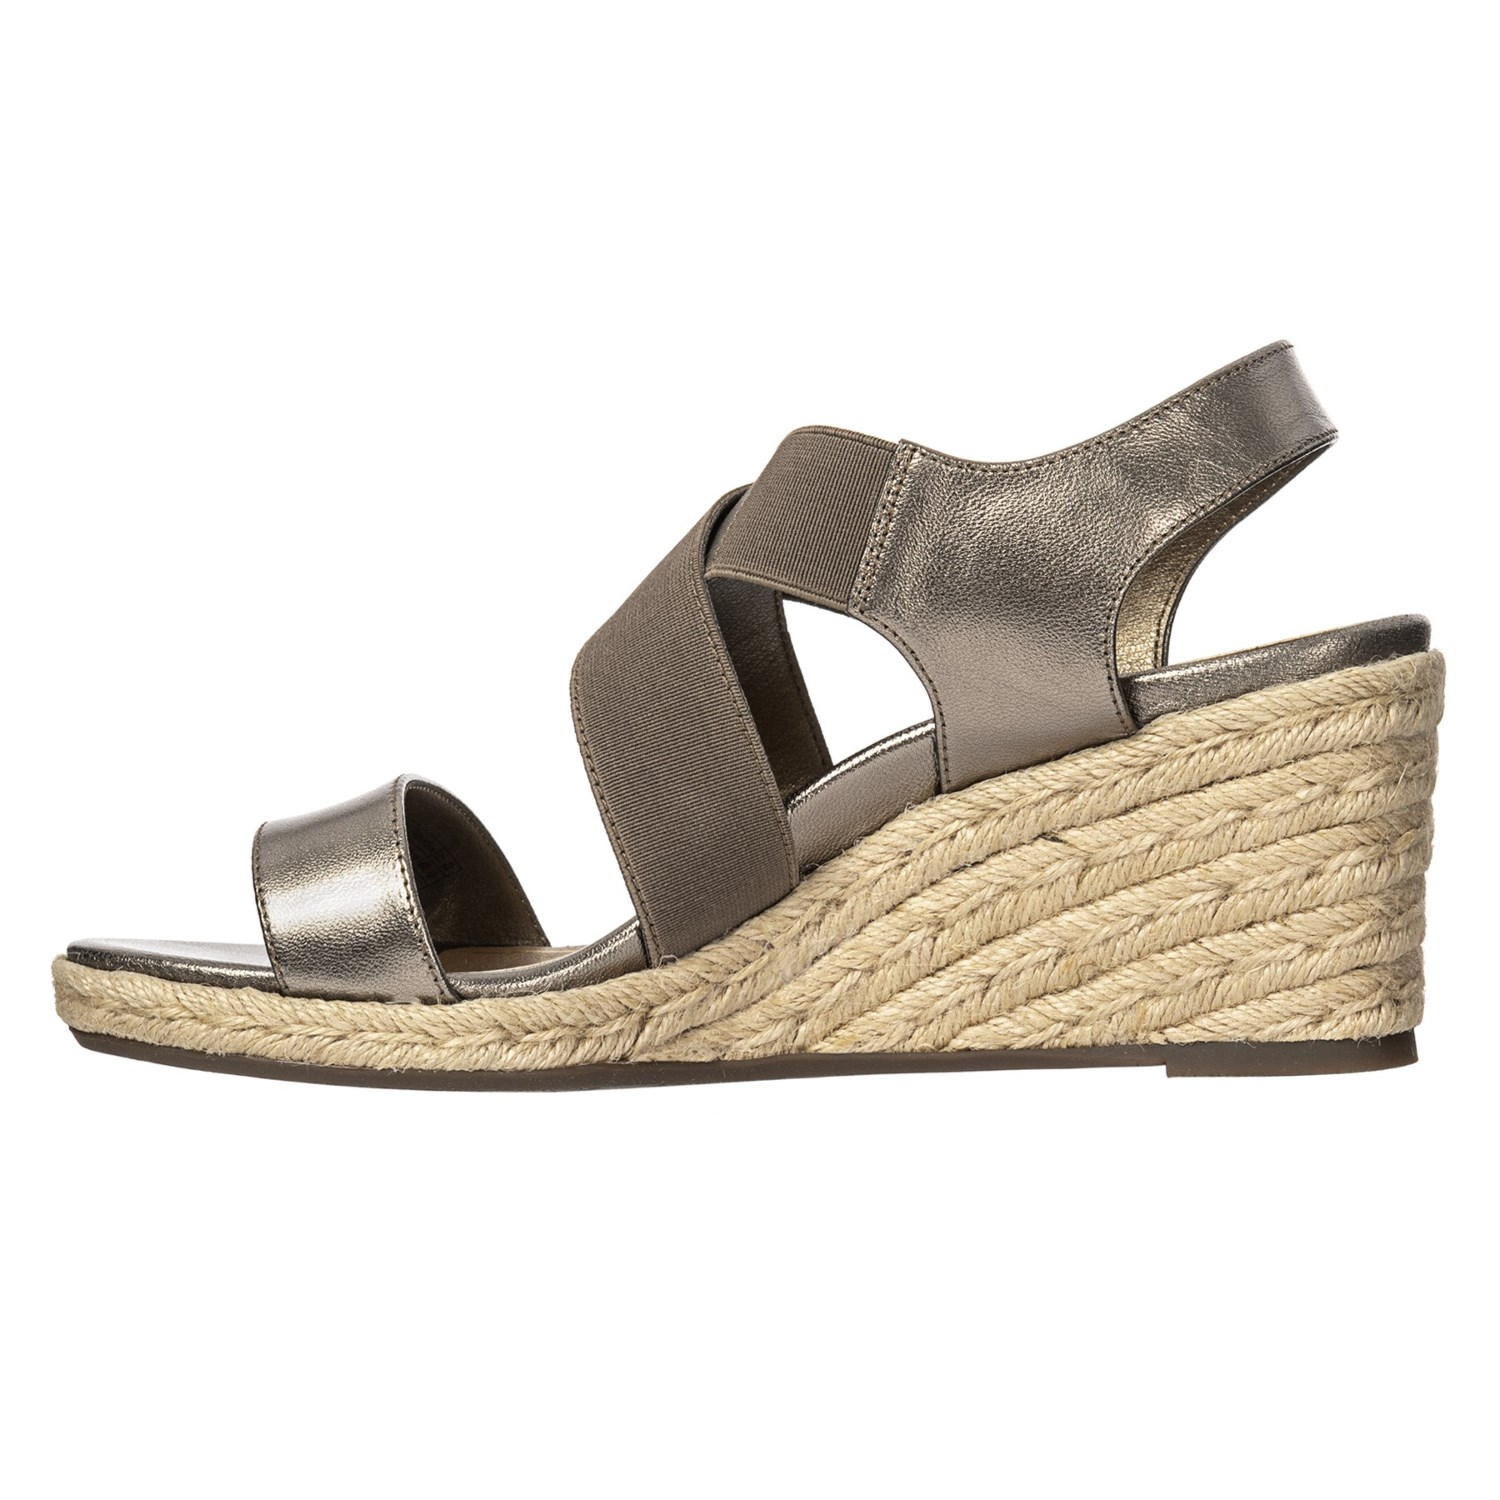 3f77055371f7 Vionic Orthaheel Technology Ainsleigh Wedge Sandal - Leather (For Women)